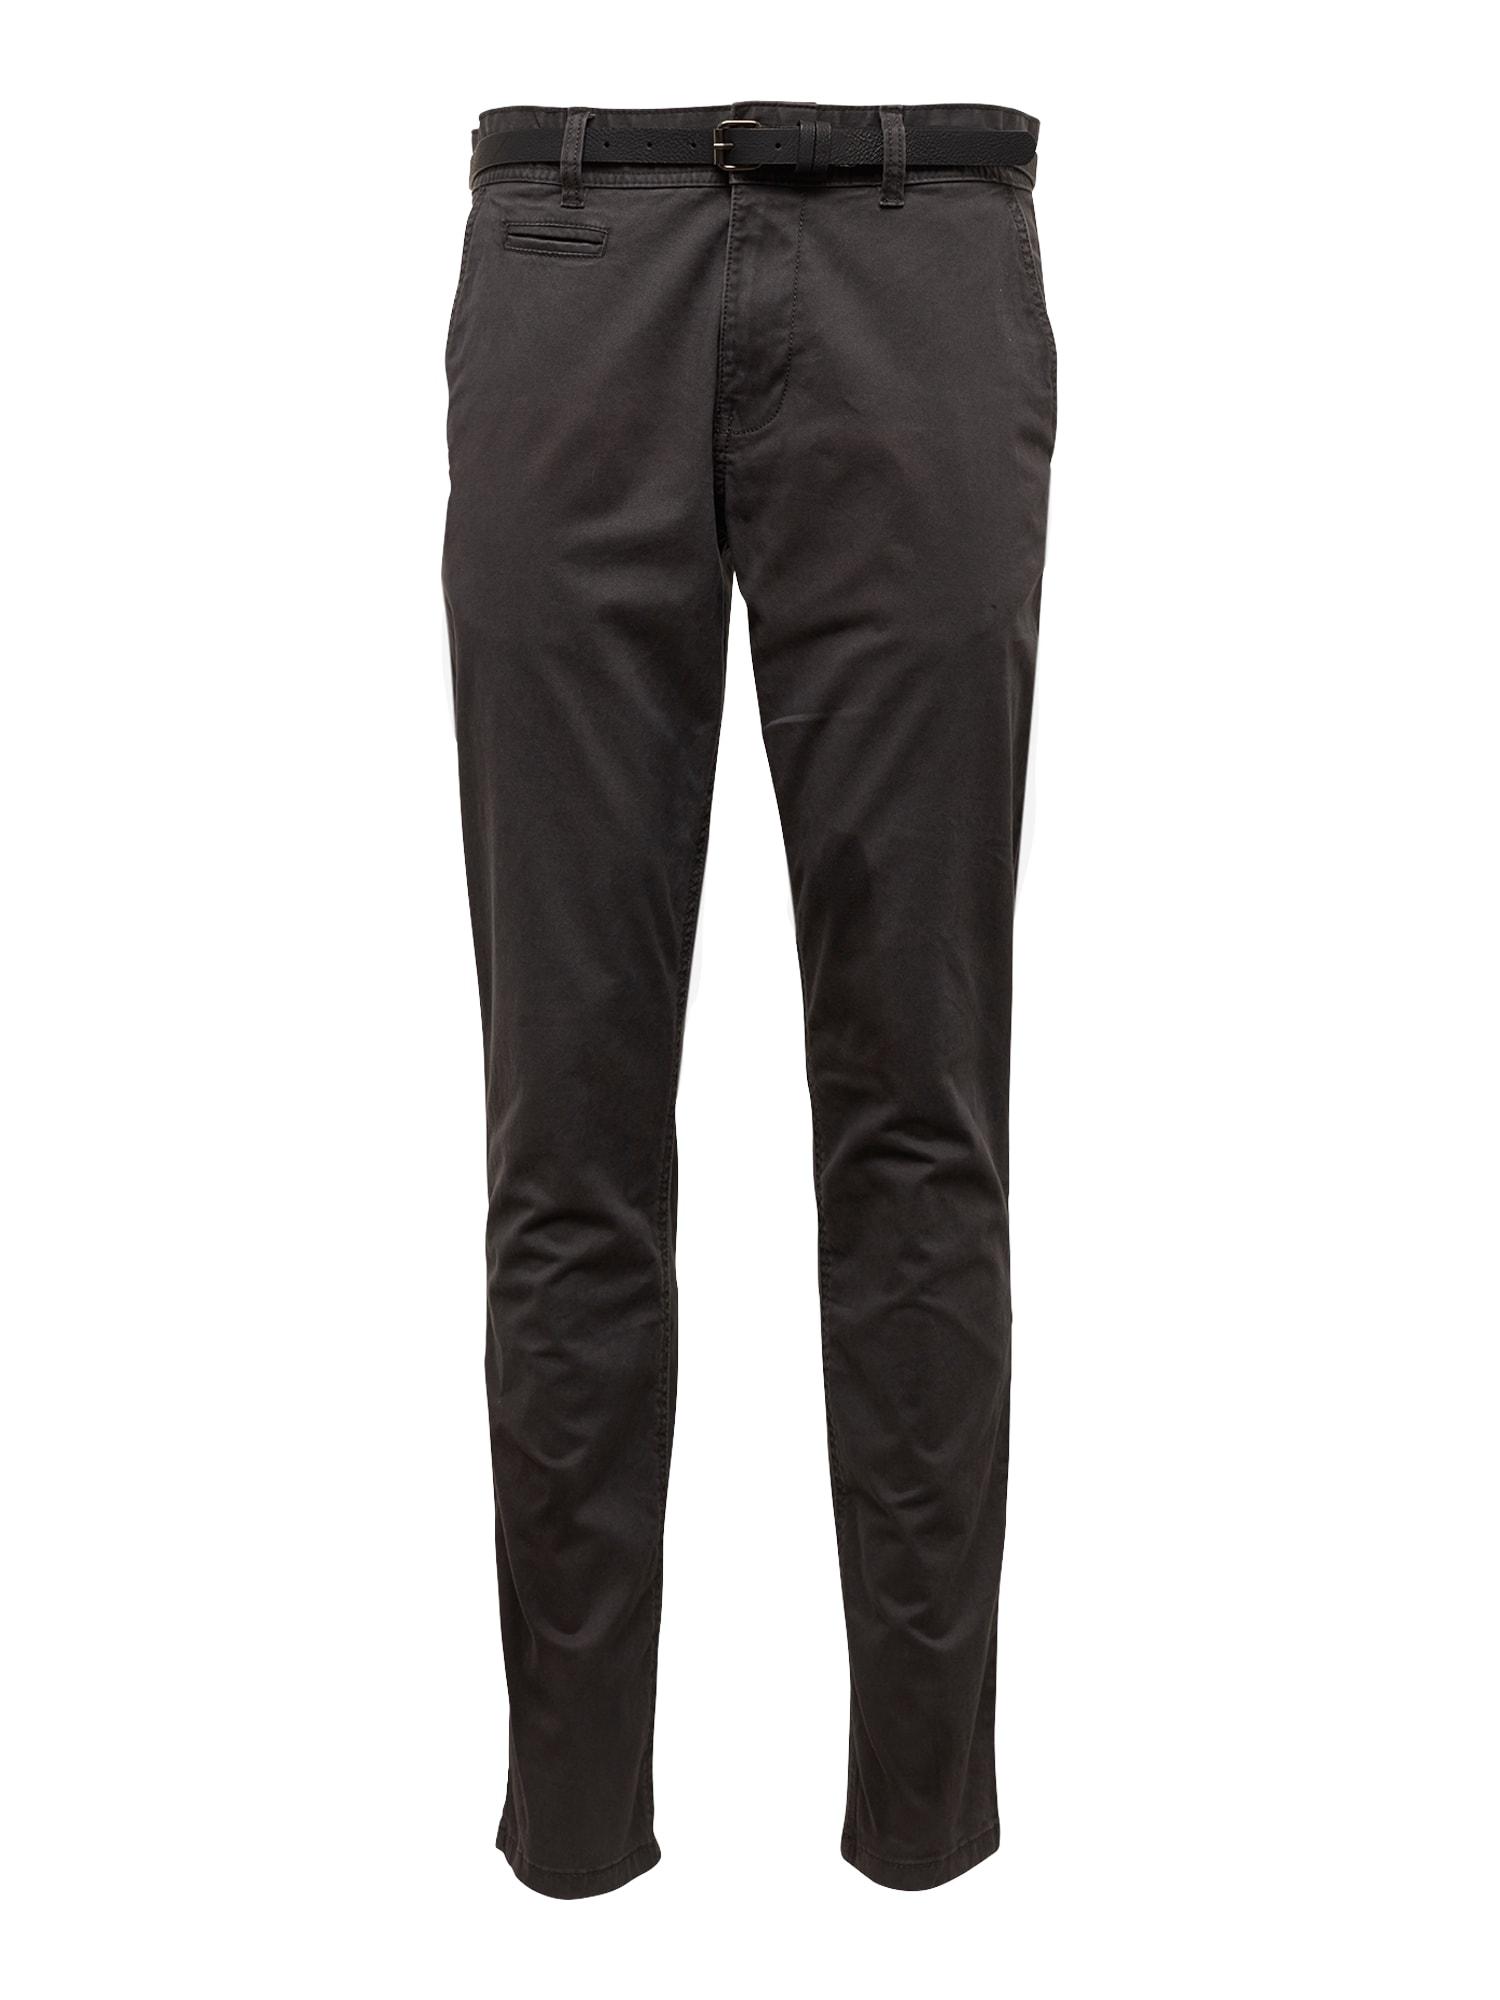 Chino kalhoty Noos Chino antracitová EDC BY ESPRIT